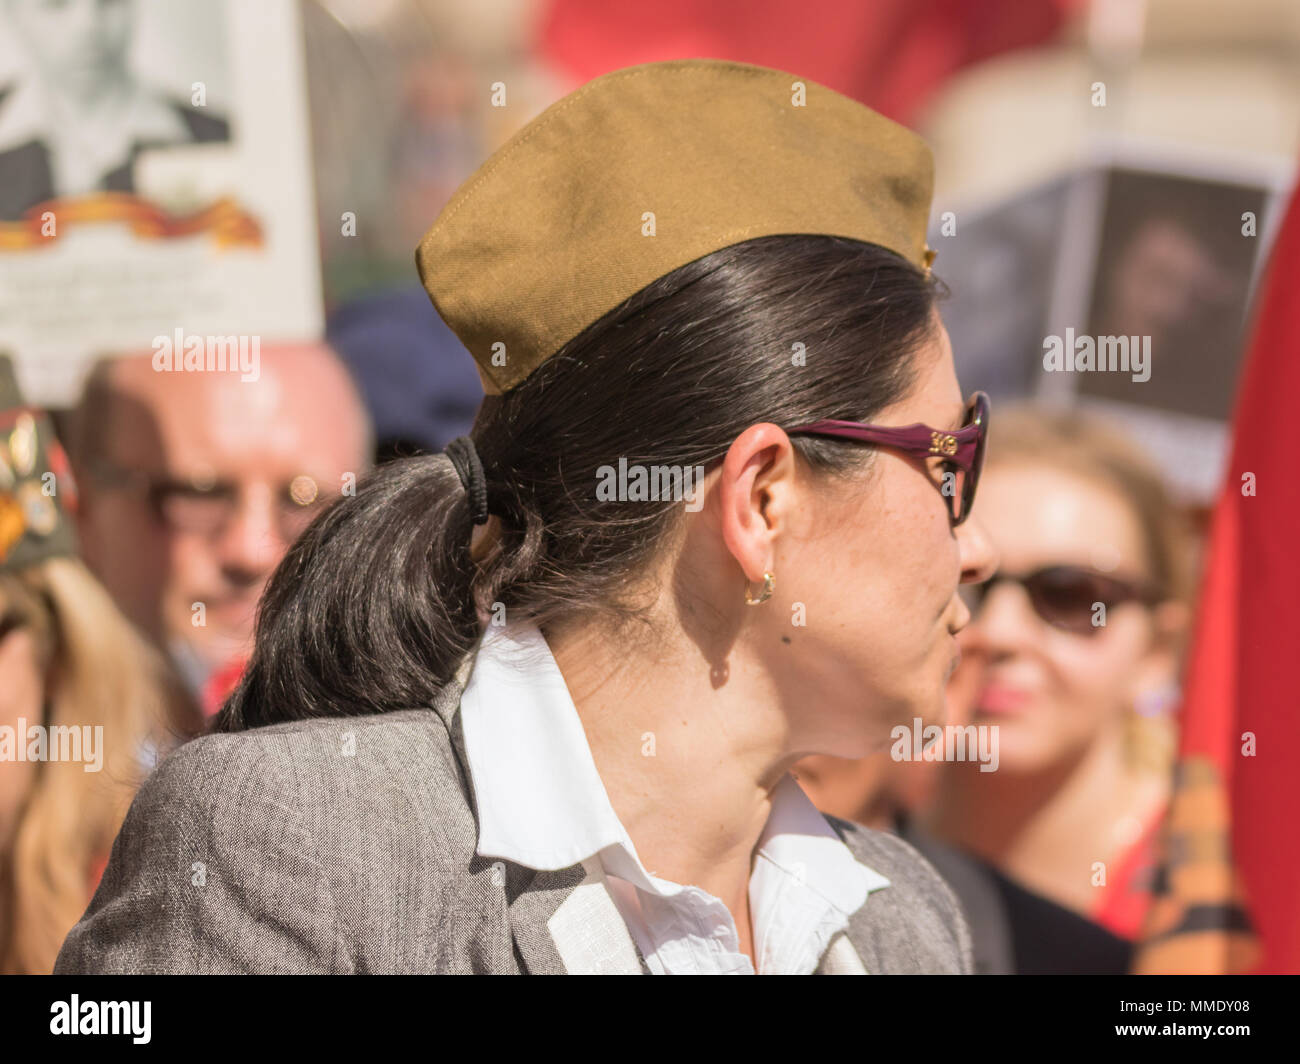 A Woman With Sunglasses In The Victory Day Parade At Westminster, London - Stock Image